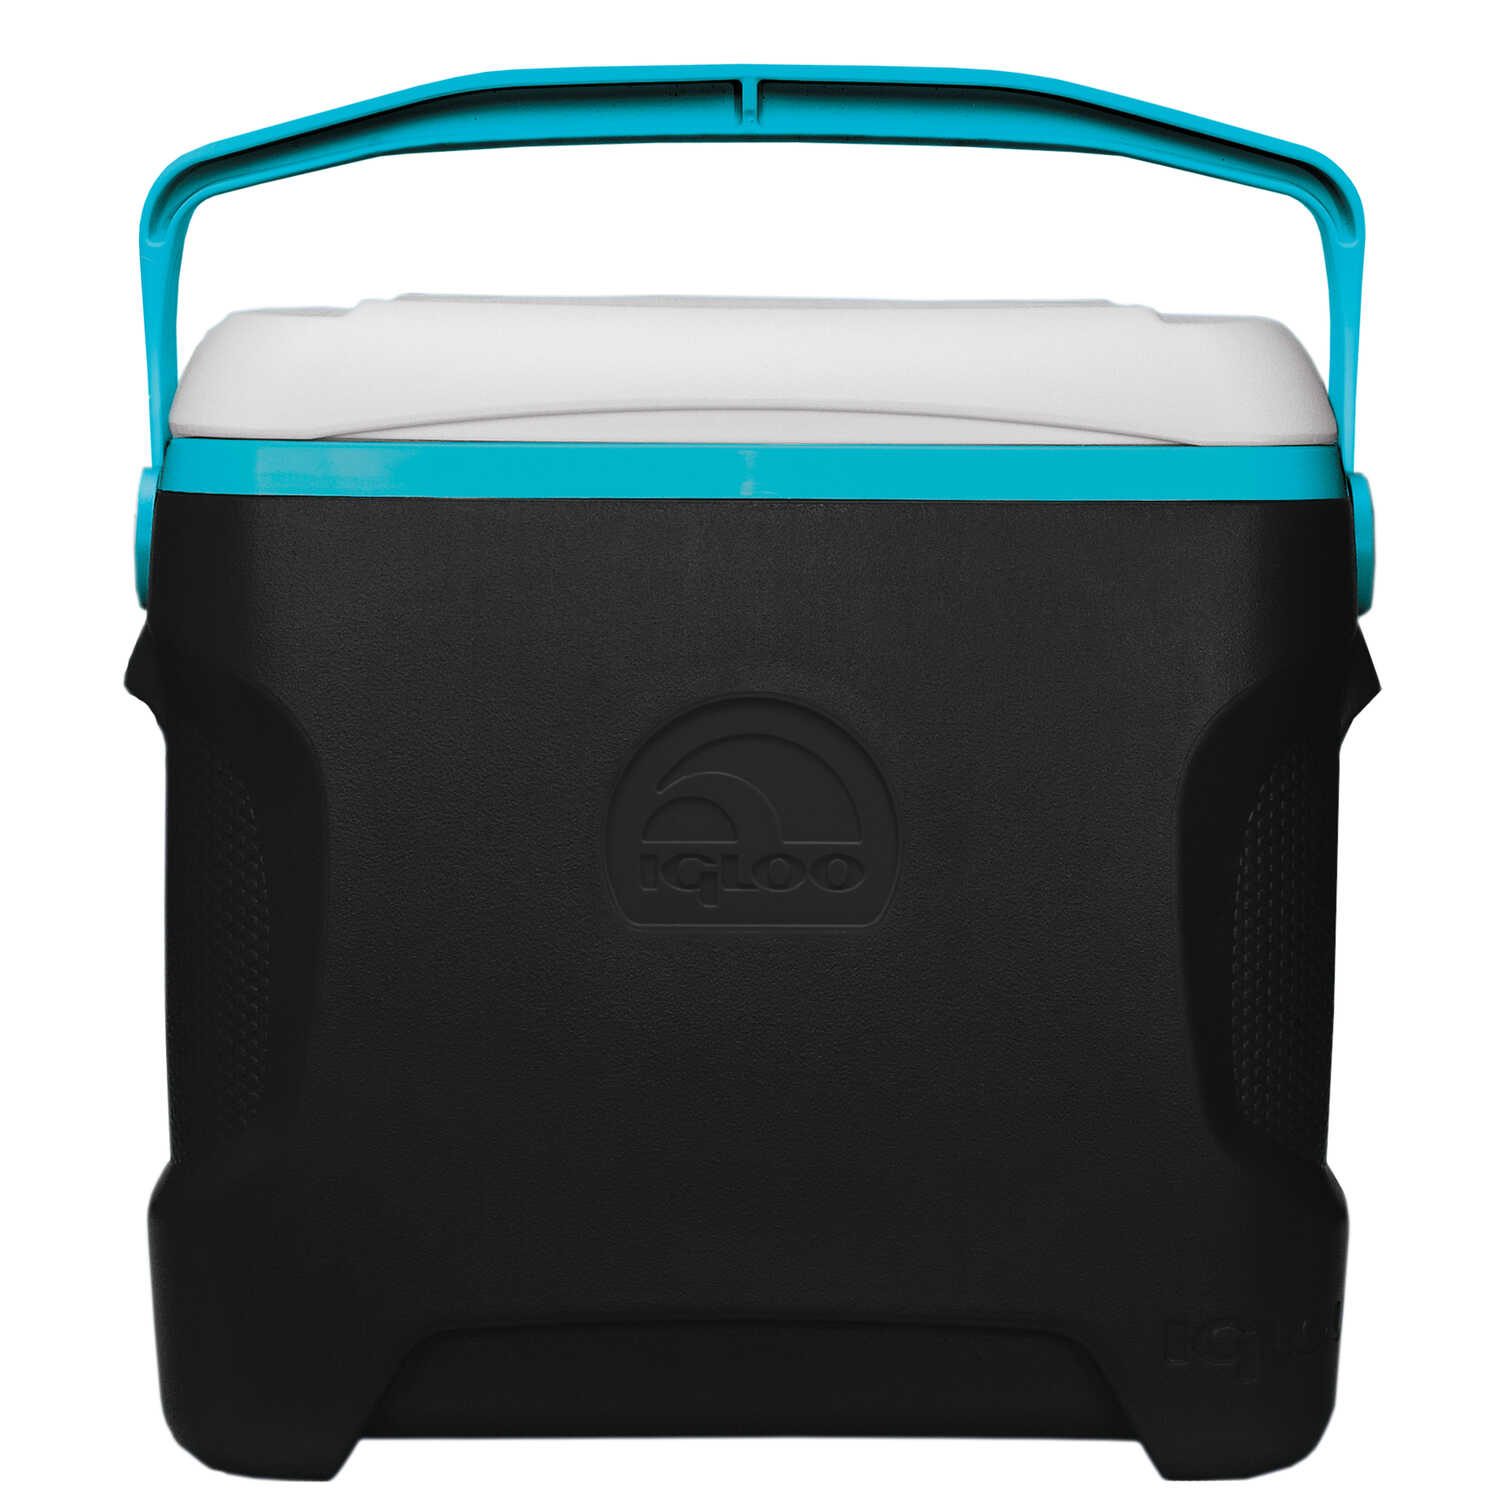 Igloo  Contour  Cooler  30 qt. Multicolored